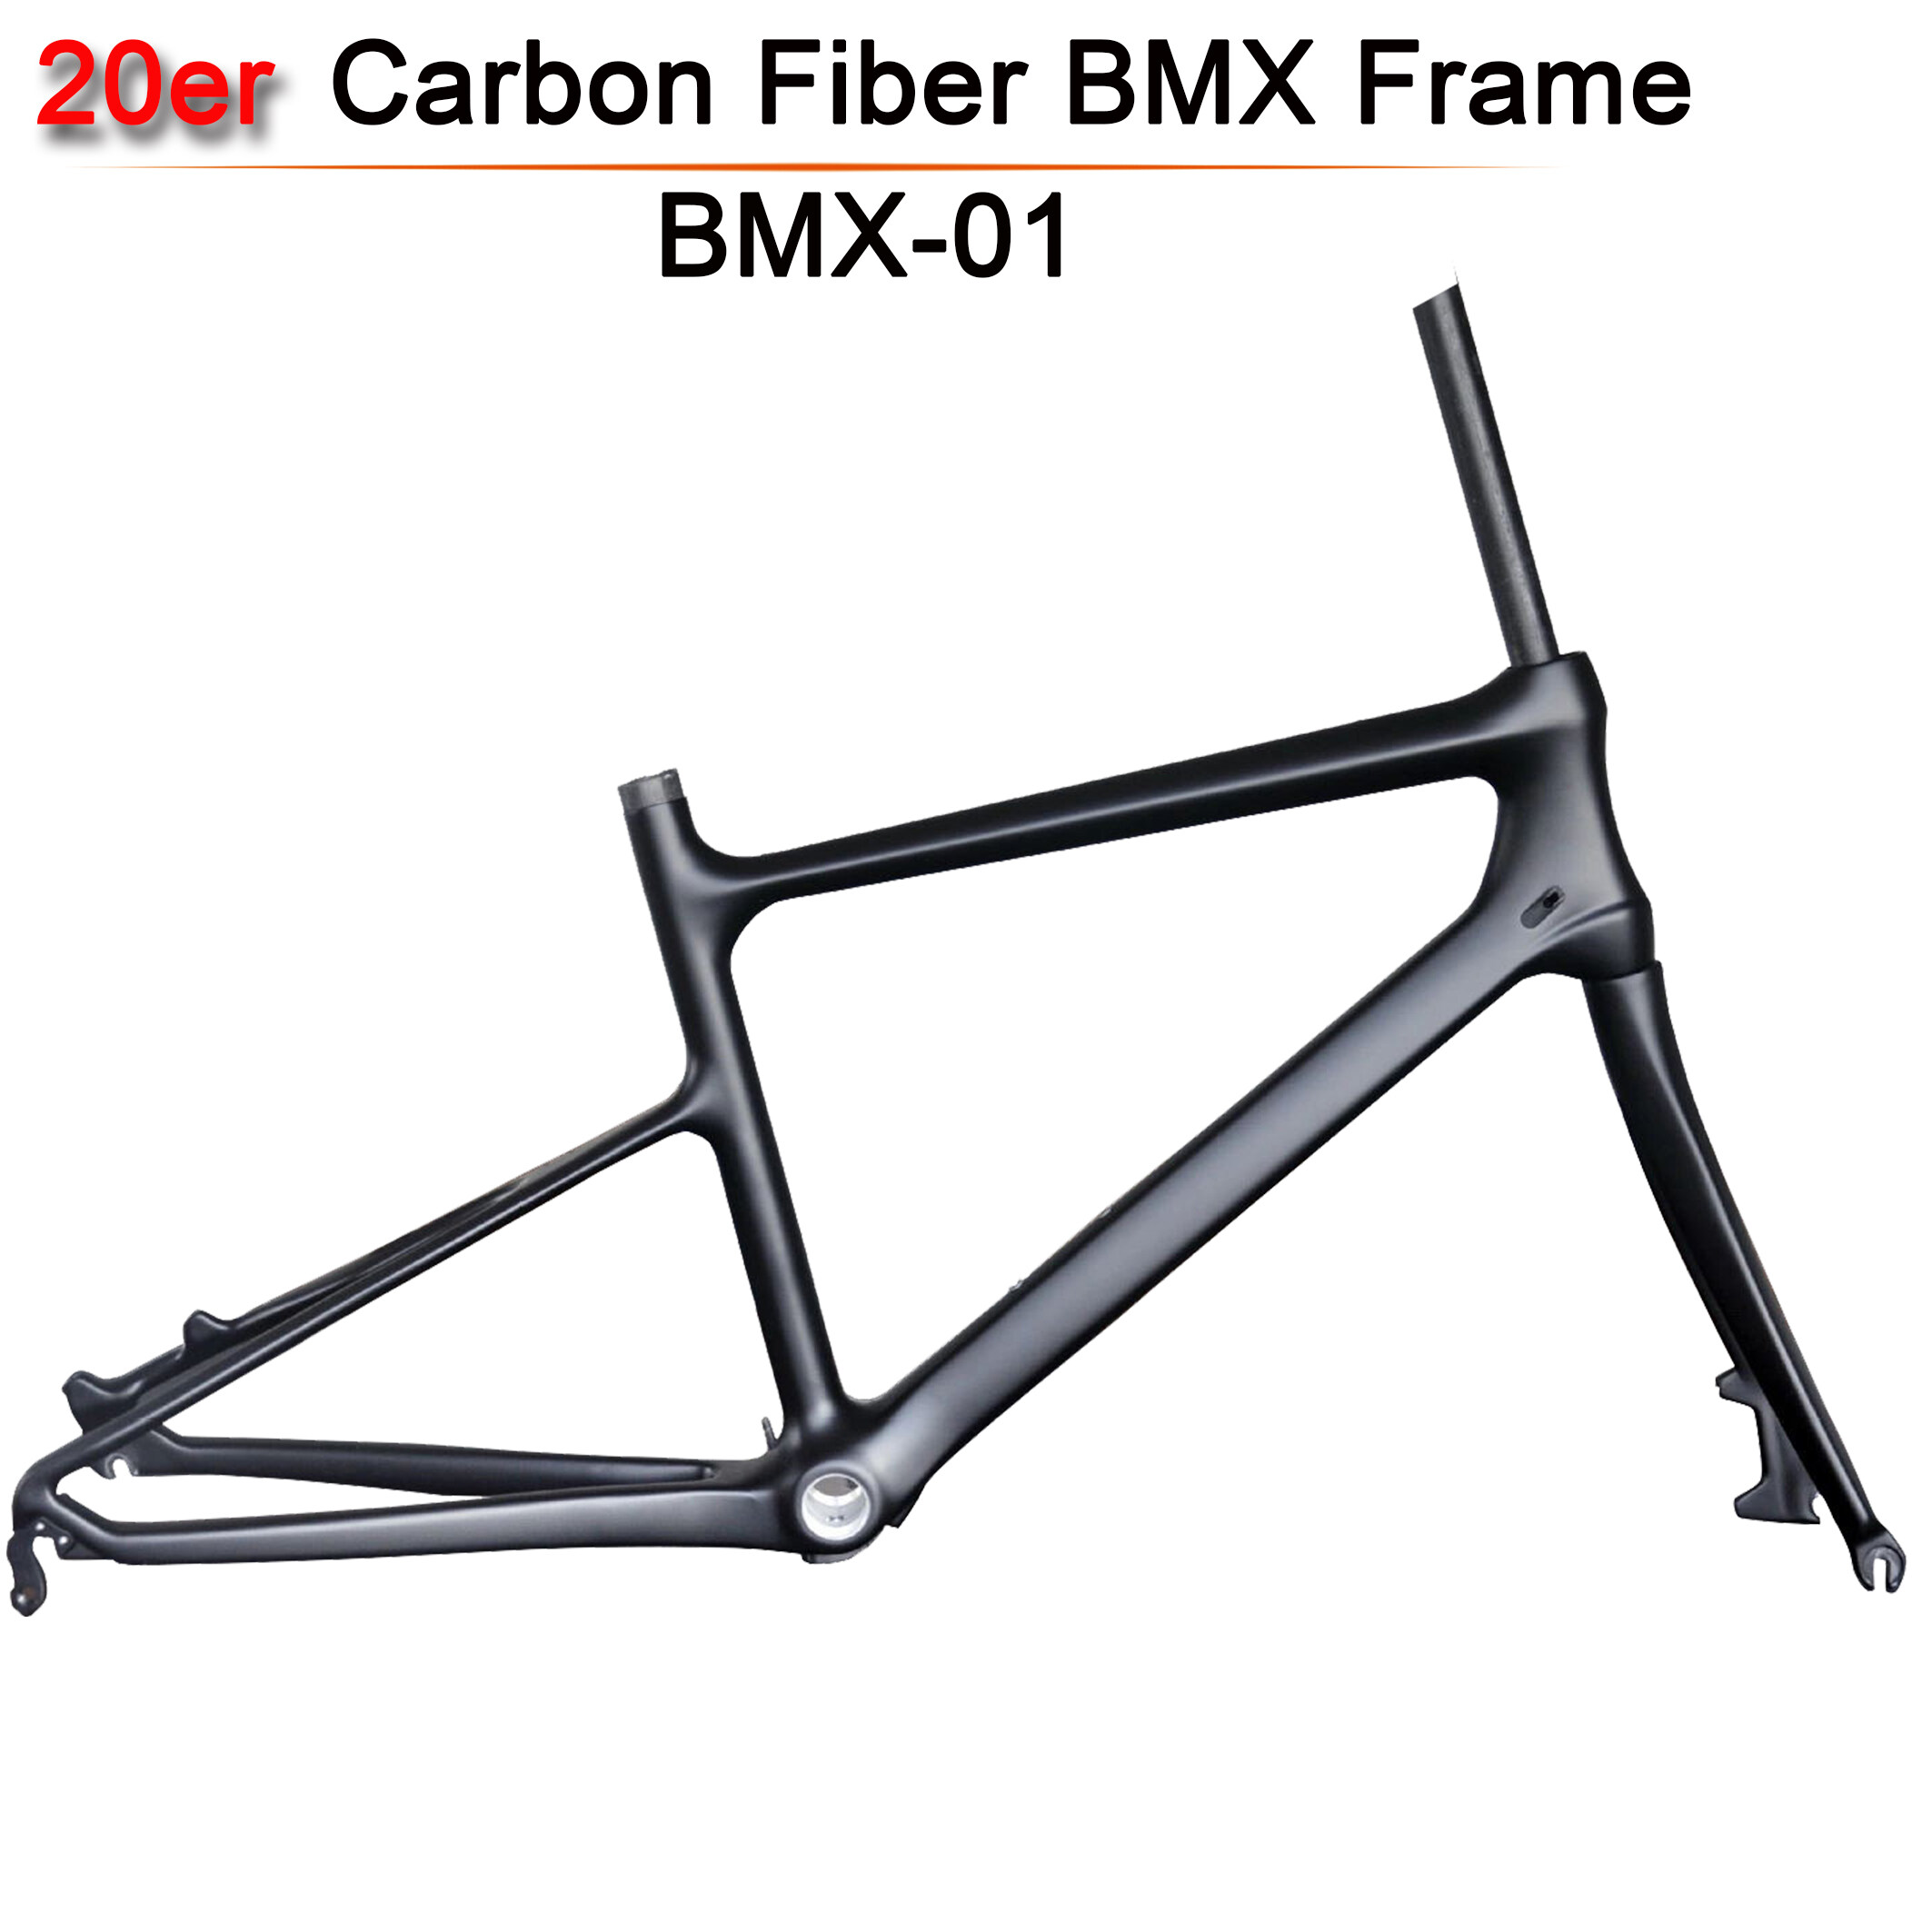 Carbon fiber bicycle frames new full carbon fiber BMX bike frame